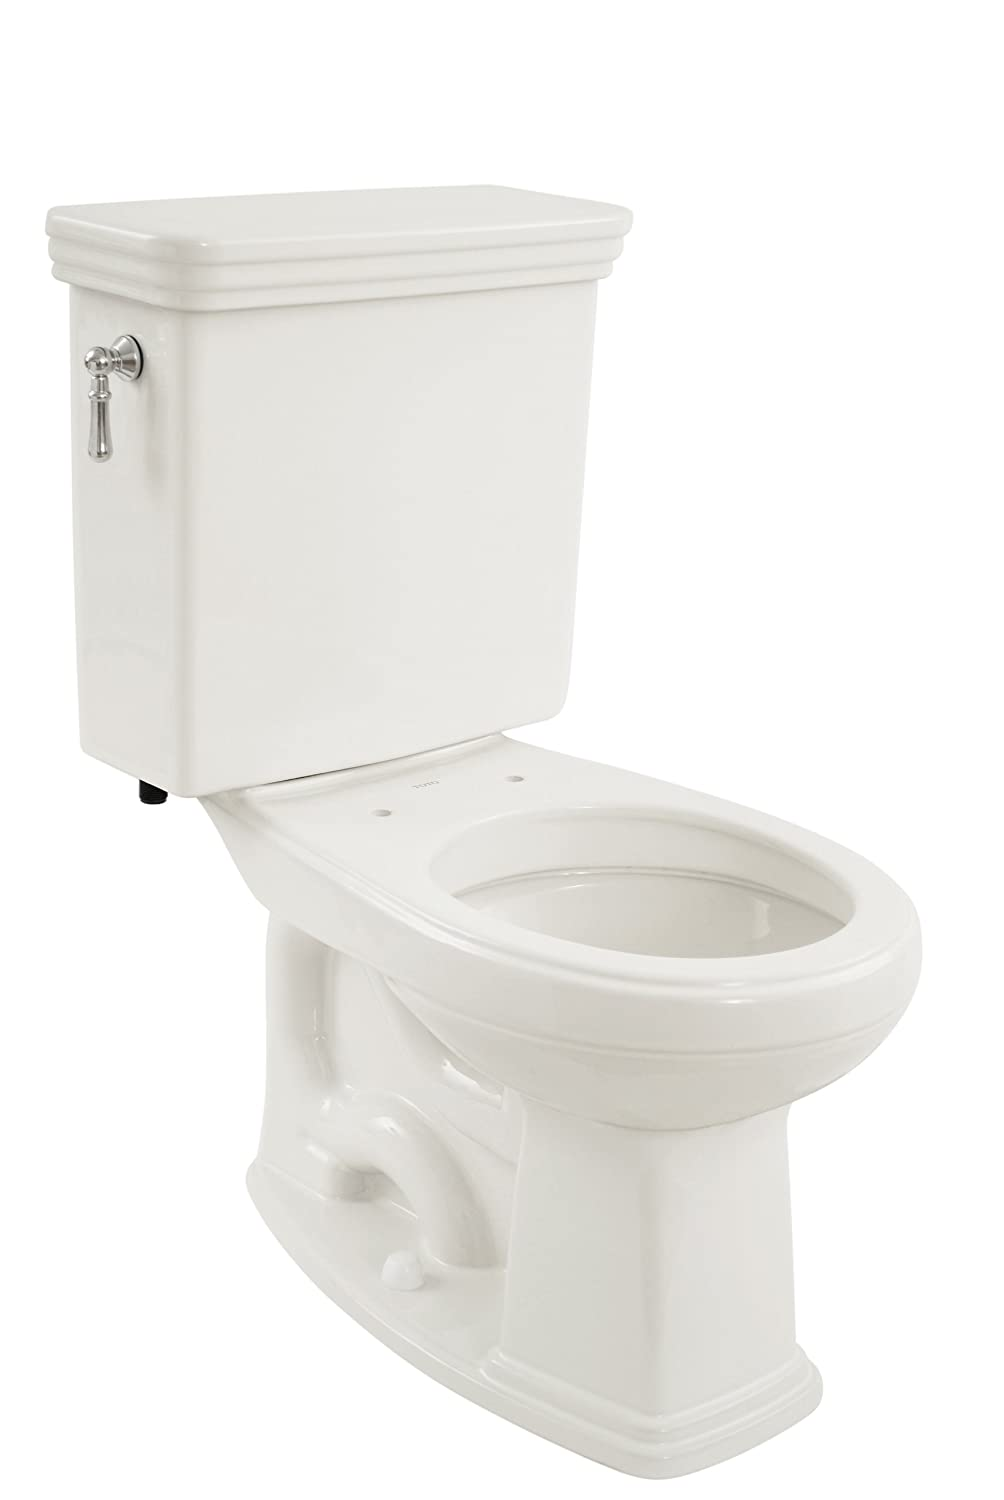 TOTO CST423SF#01 Promenade G-Max Round Bowl and Tank Universal Height Cotton White